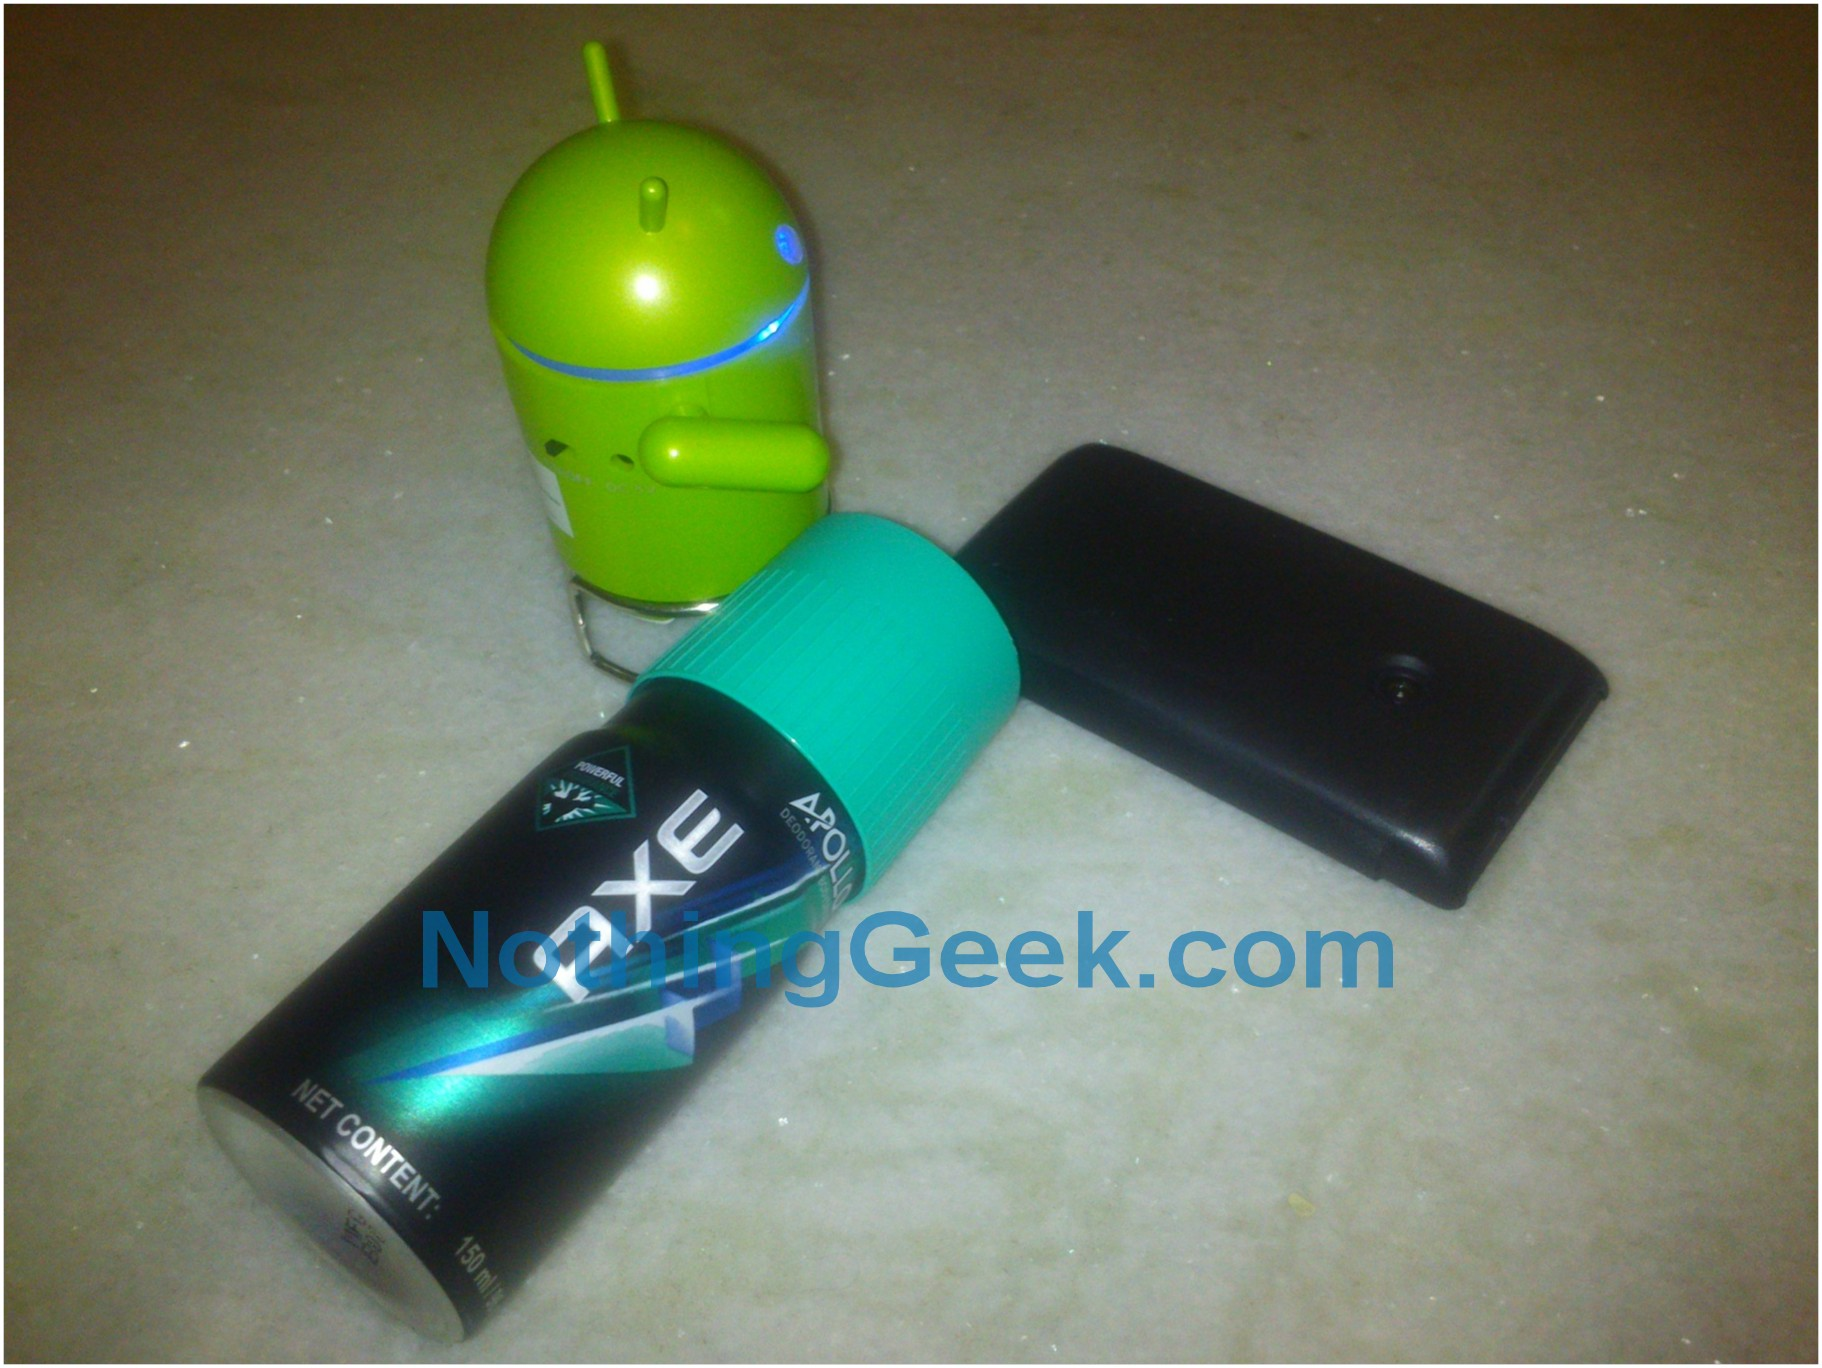 Axe Apollo Review Awaken The Hero In You Nothinggeek Deo 150 Ml Little Droid At Our Office Is Raring To Use Before Doing